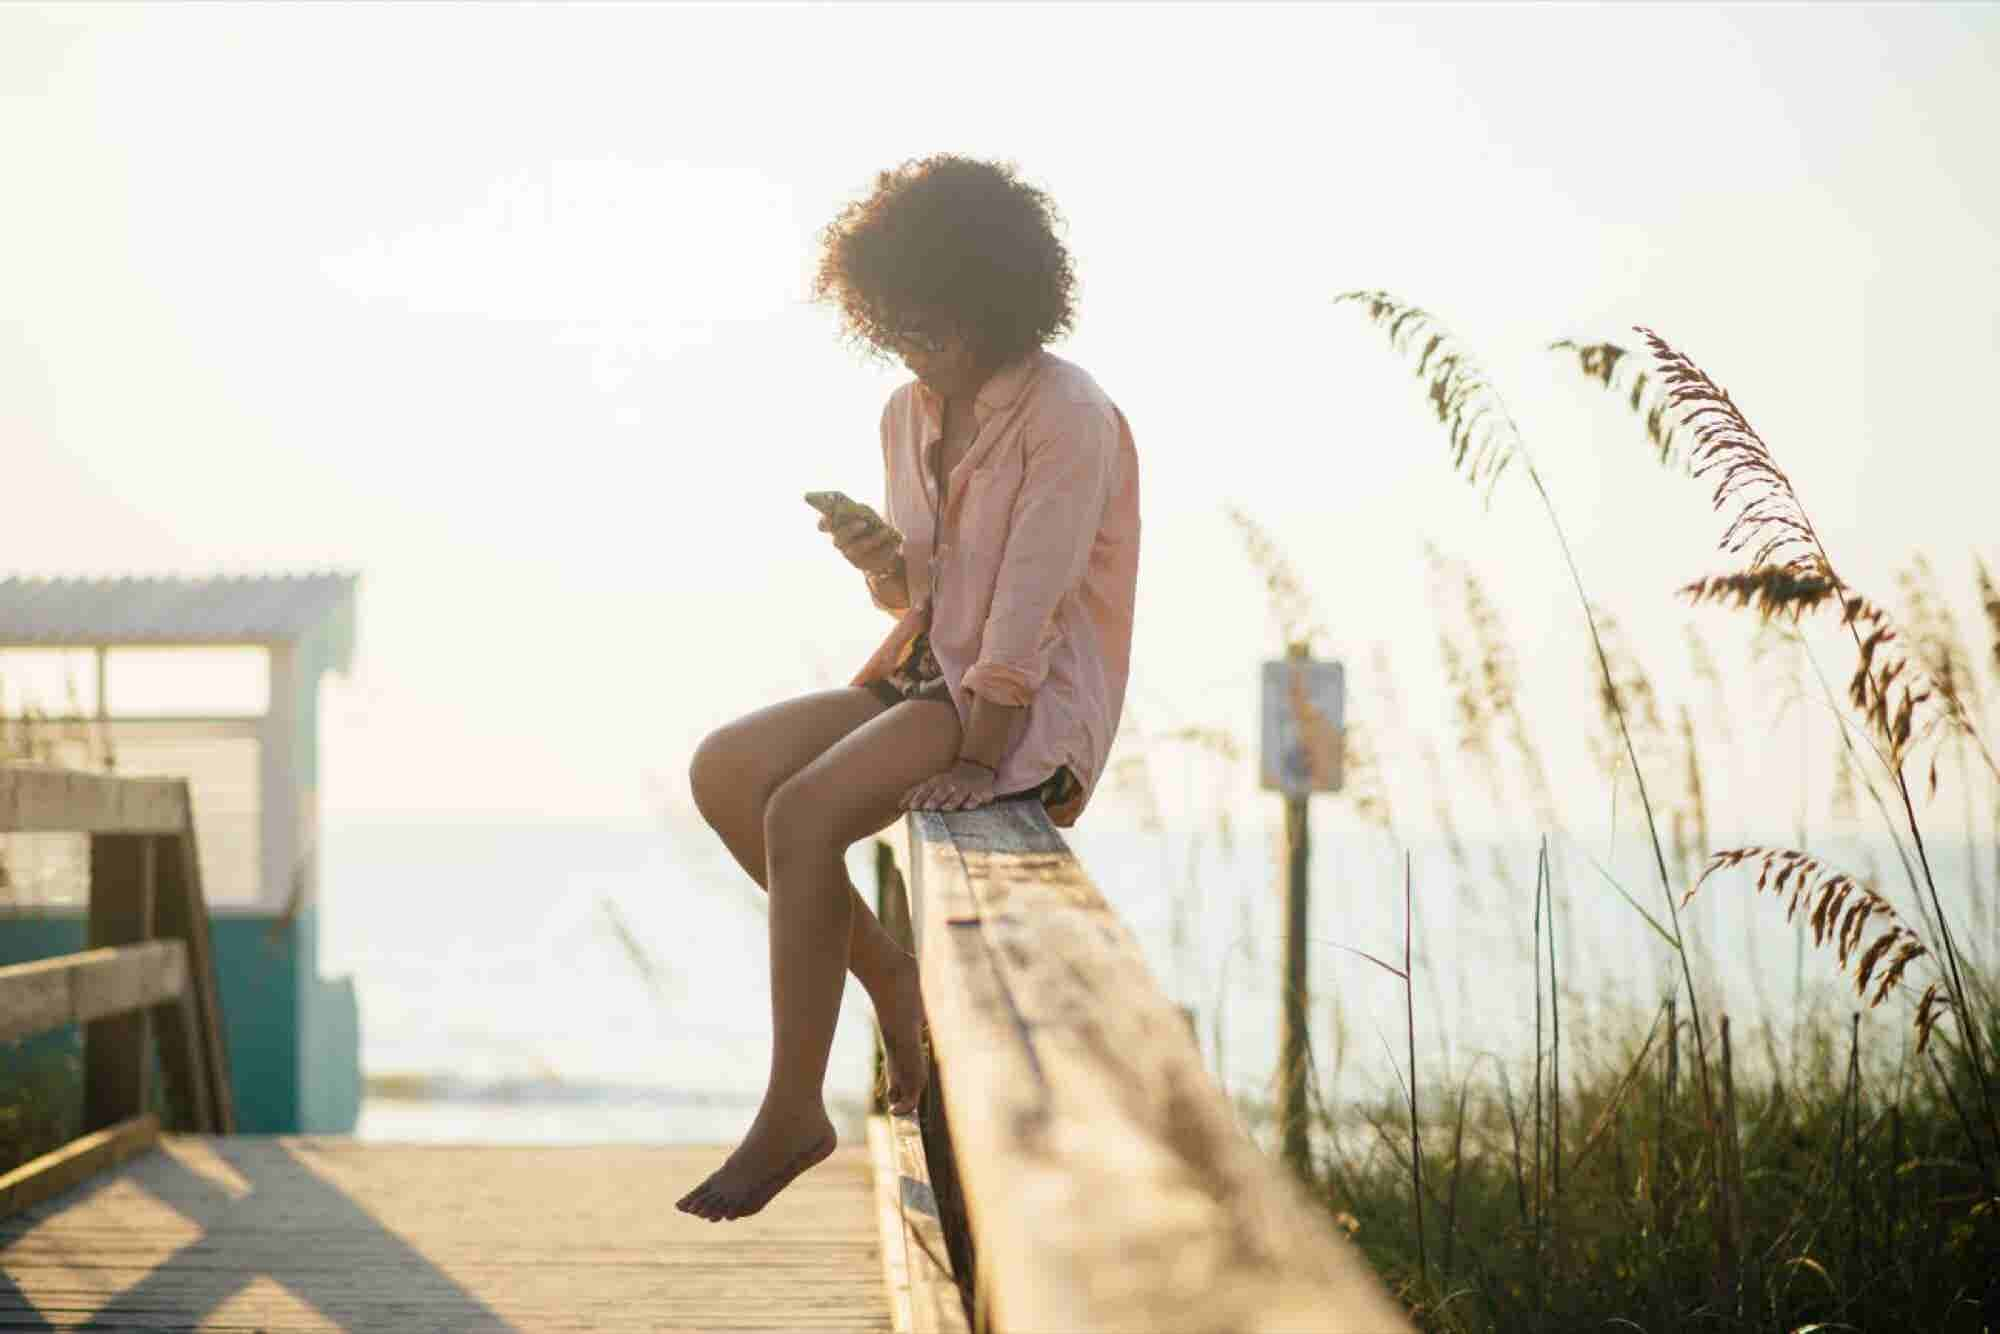 It's (Almost) Summertime, and Customers Are Distracted. Here Are 5 Ecommerce Trends You Need to Pay Attention to, to Keep Customers Listening.